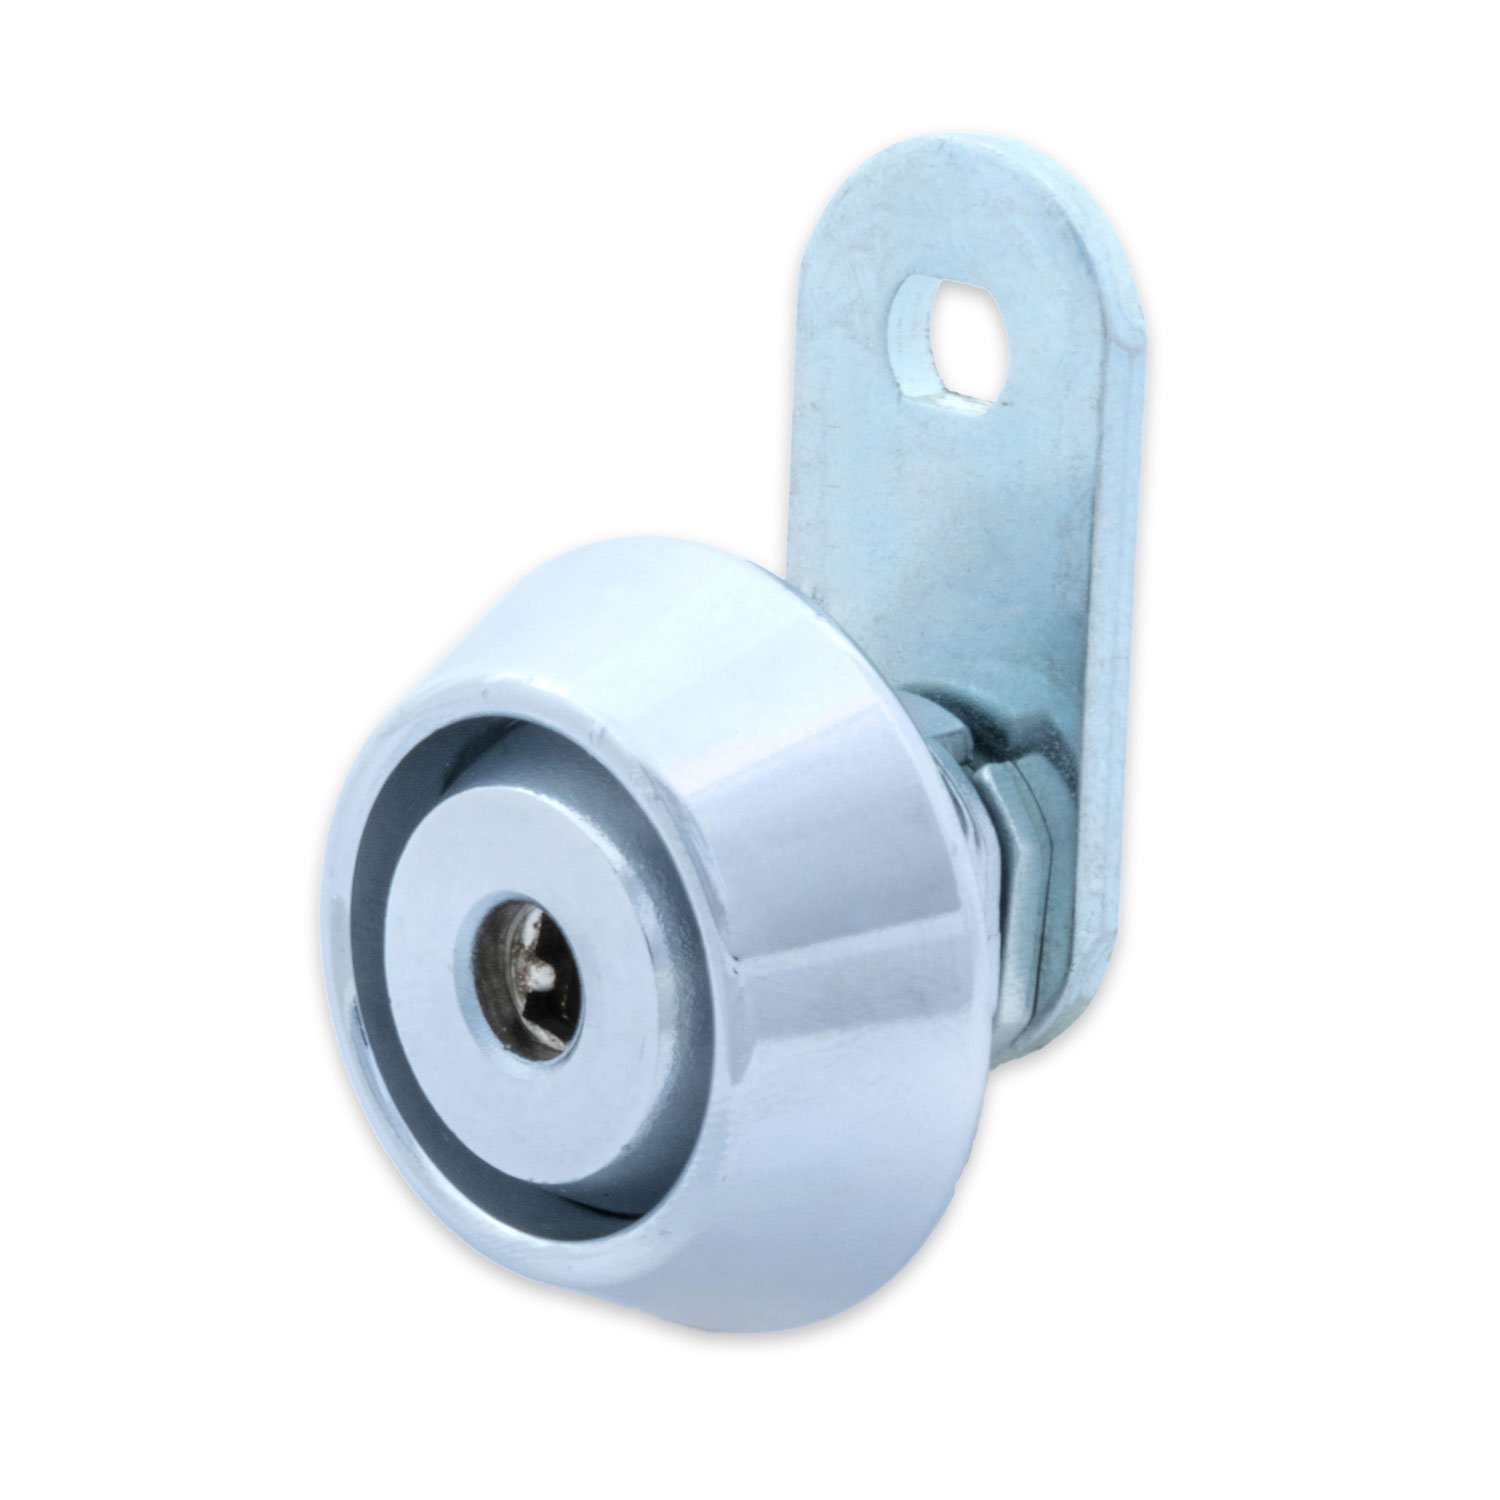 FJM Security C8418B-KD European Style Cam Lock with Stainless Steel Collar Ring and Chrome Finish, Keyed Different